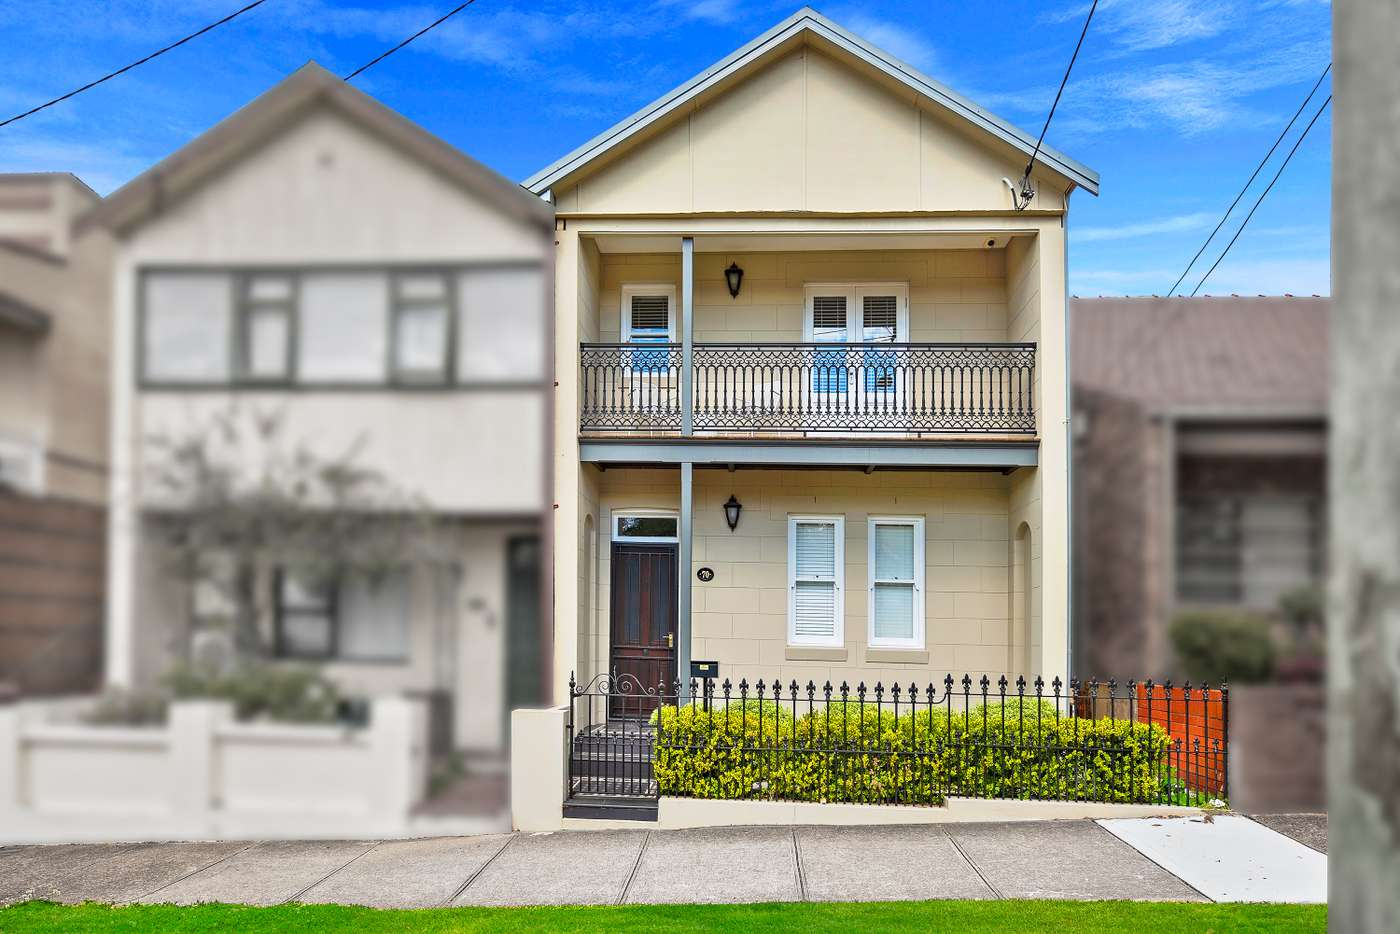 Main view of Homely house listing, 70 Park Avenue, Ashfield NSW 2131